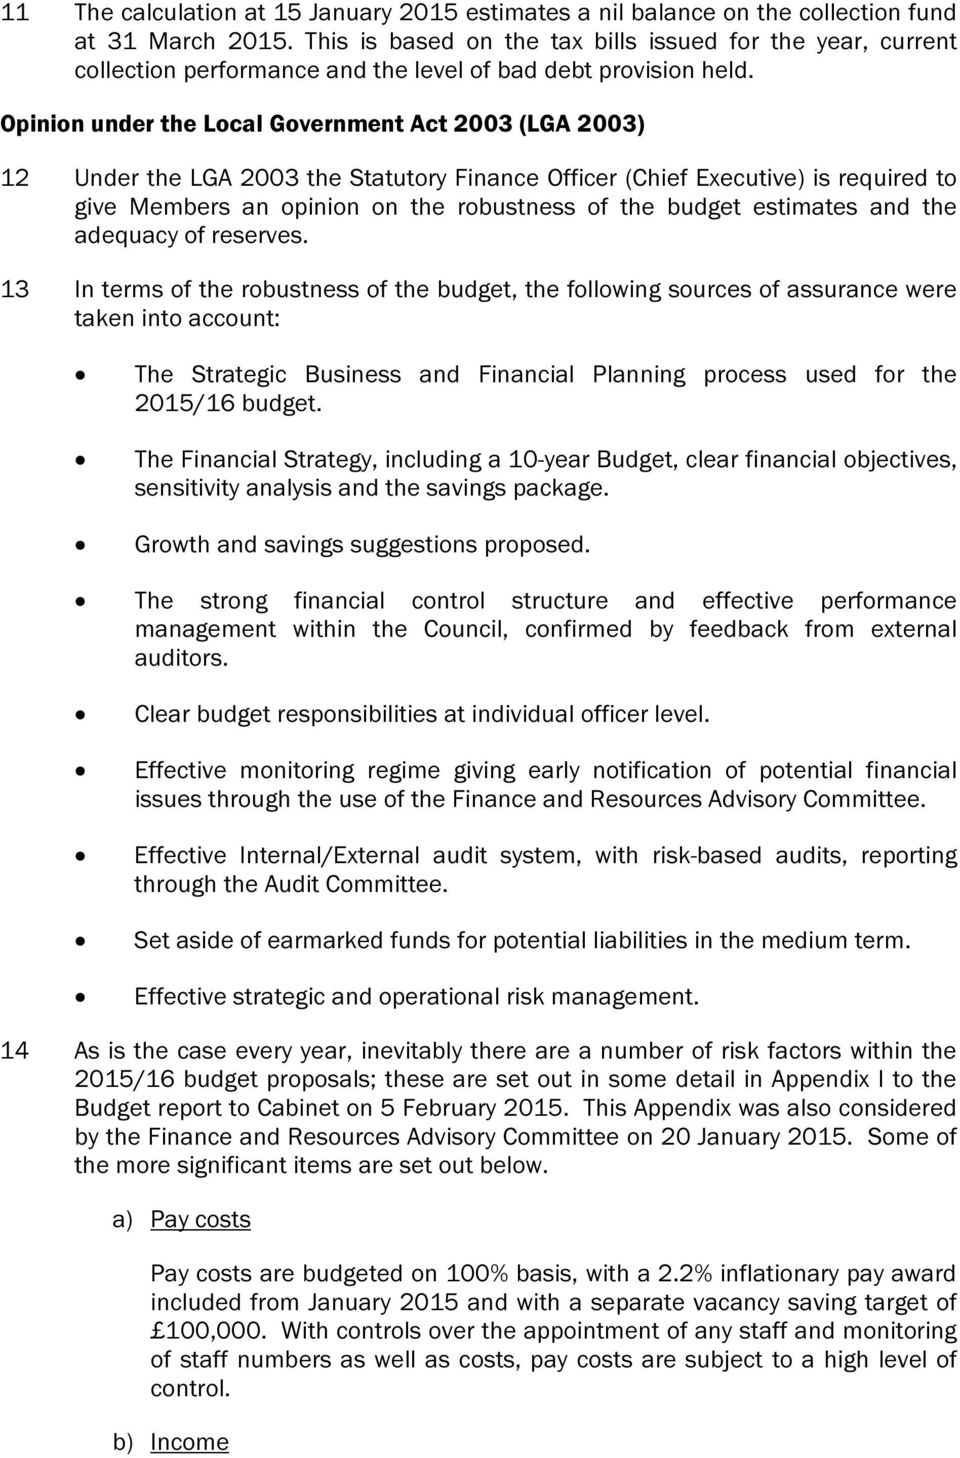 Opinion under the Local Government Act 2003 (LGA 2003) 12 Under the LGA 2003 the Statutory Finance Officer (Chief Executive) is required to give Members an opinion on the robustness of the budget